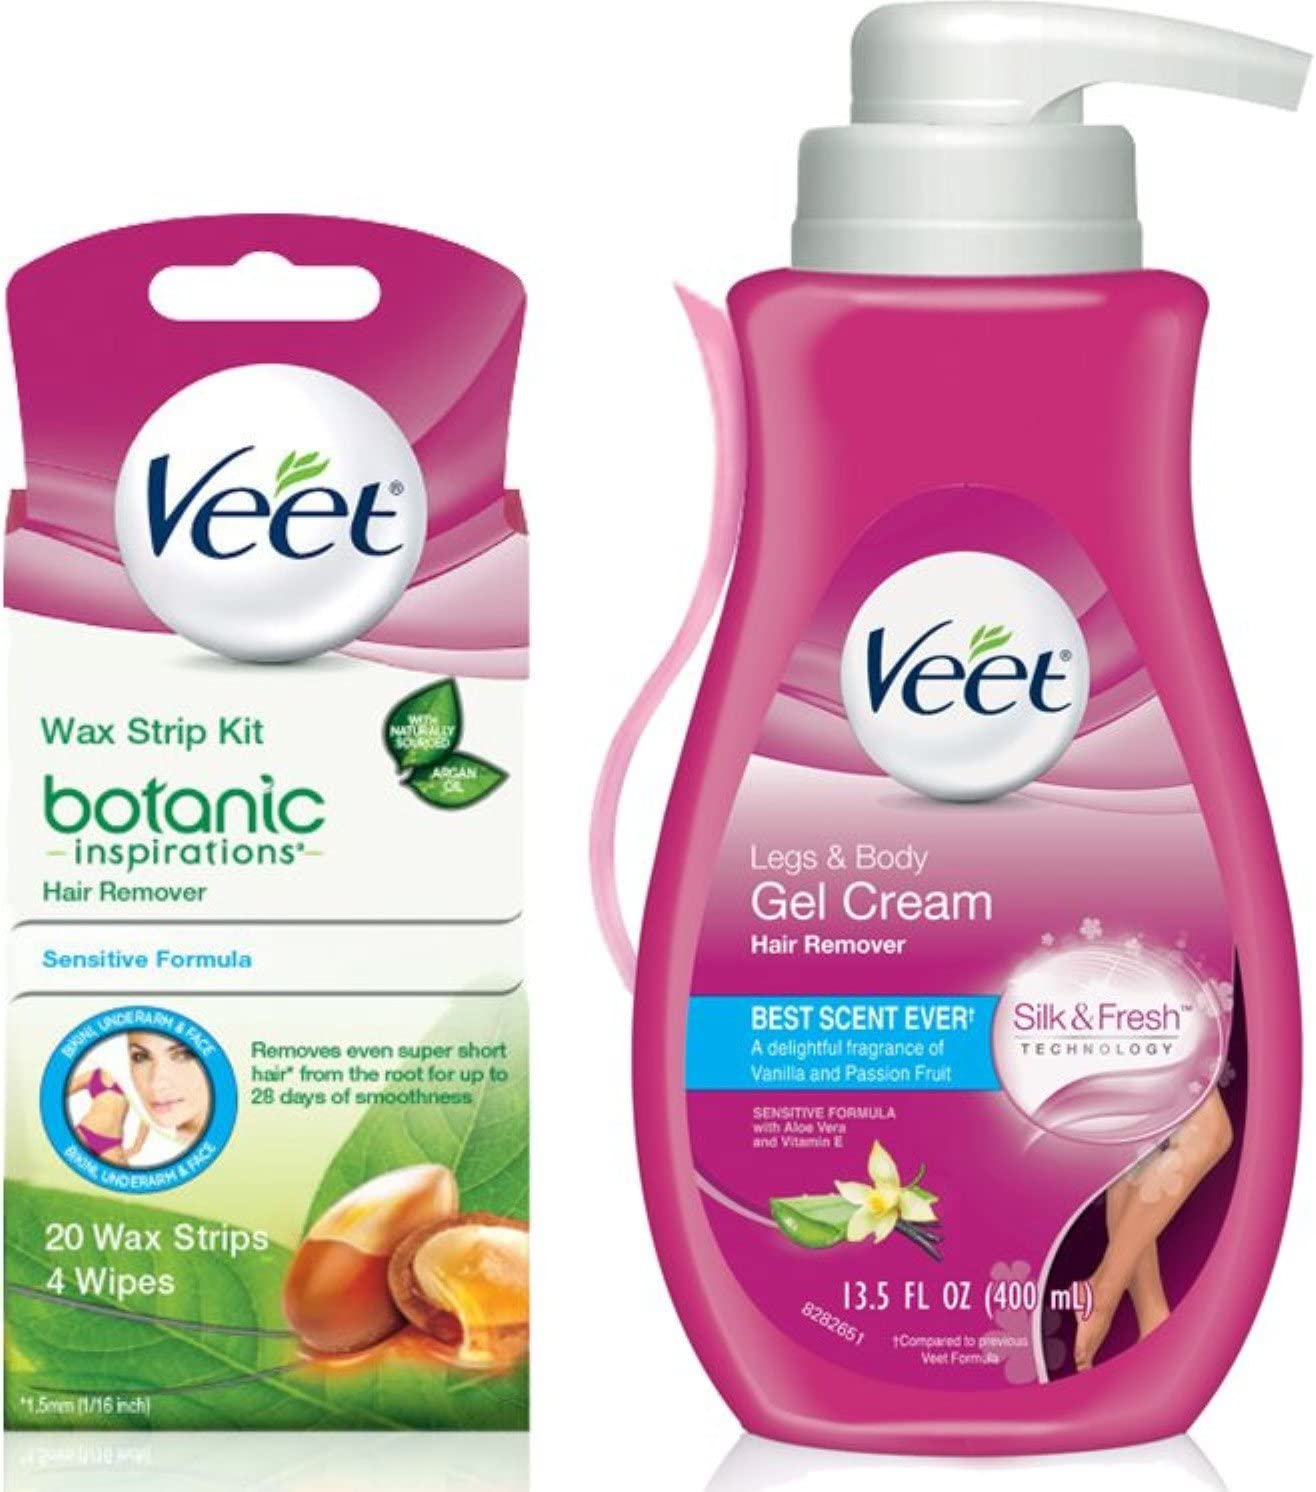 Veet (Gel + Wax Strips Kit) Gel Hair Removal Cream, Legs & Body 13.52 Oz & Botanic Inspirations Wax Strip Kit Bikini, Underarm, Face 20 Ct, 1 ea